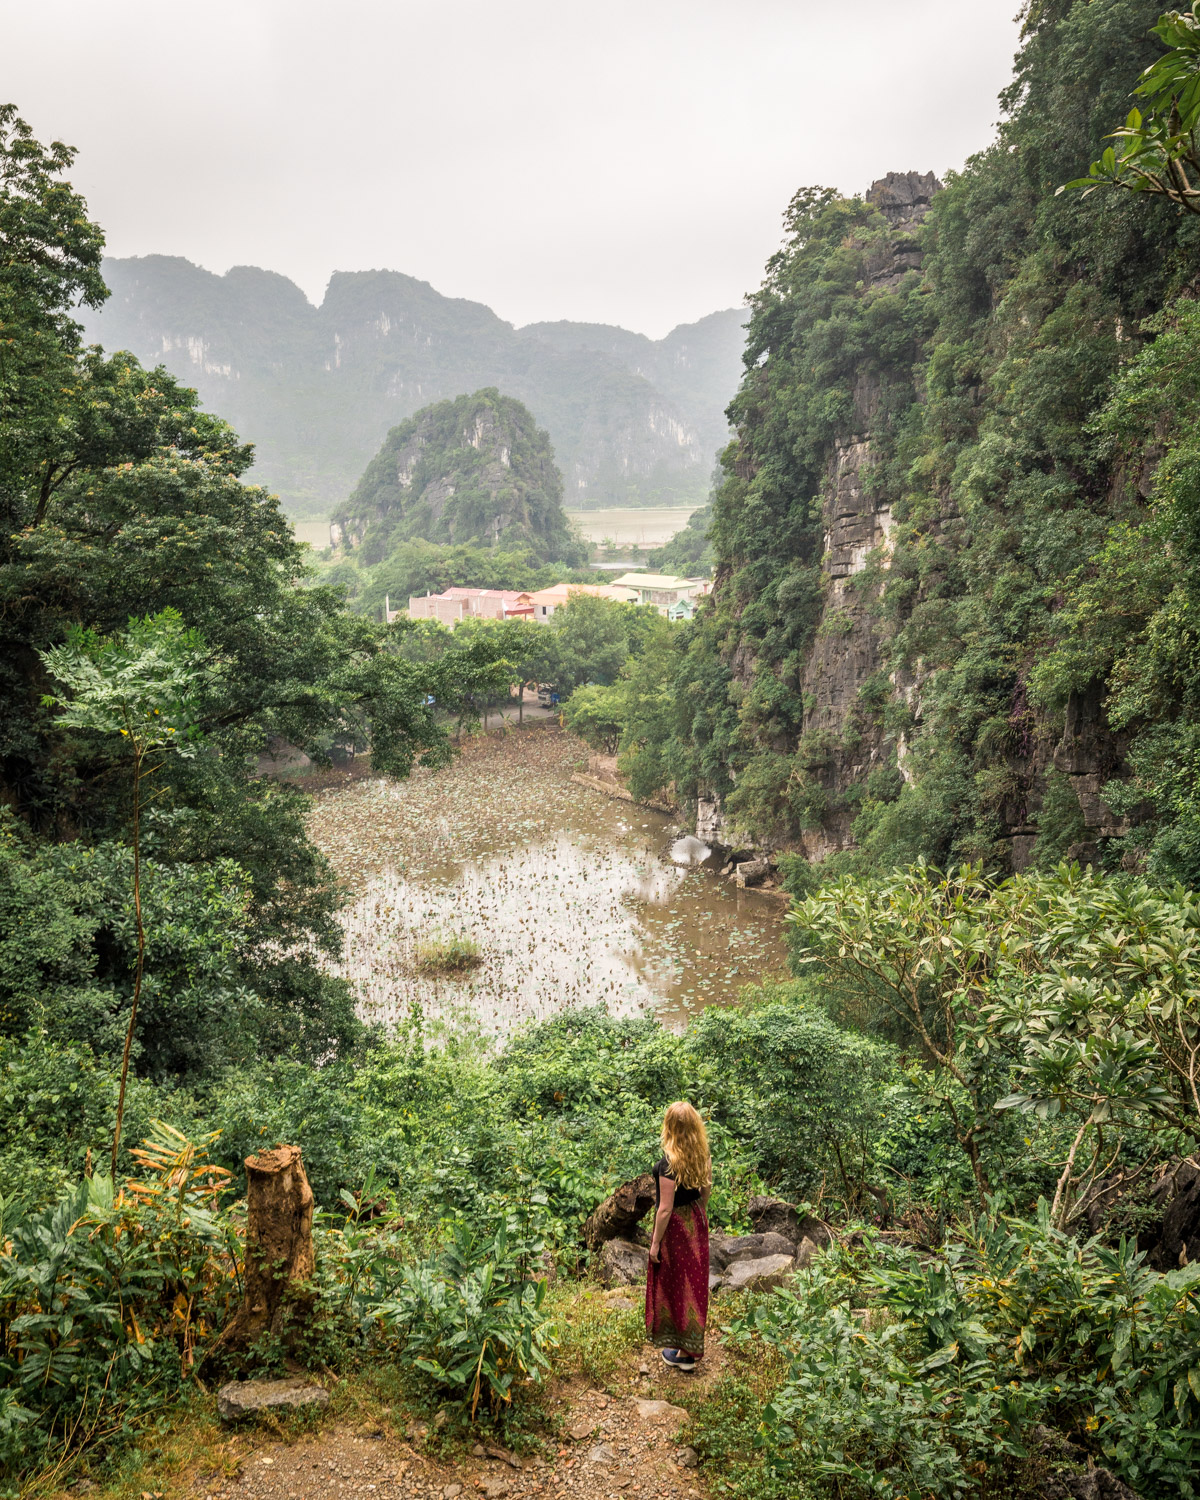 The view of the mountains from Bich Dong Pagoda, Tam Coc